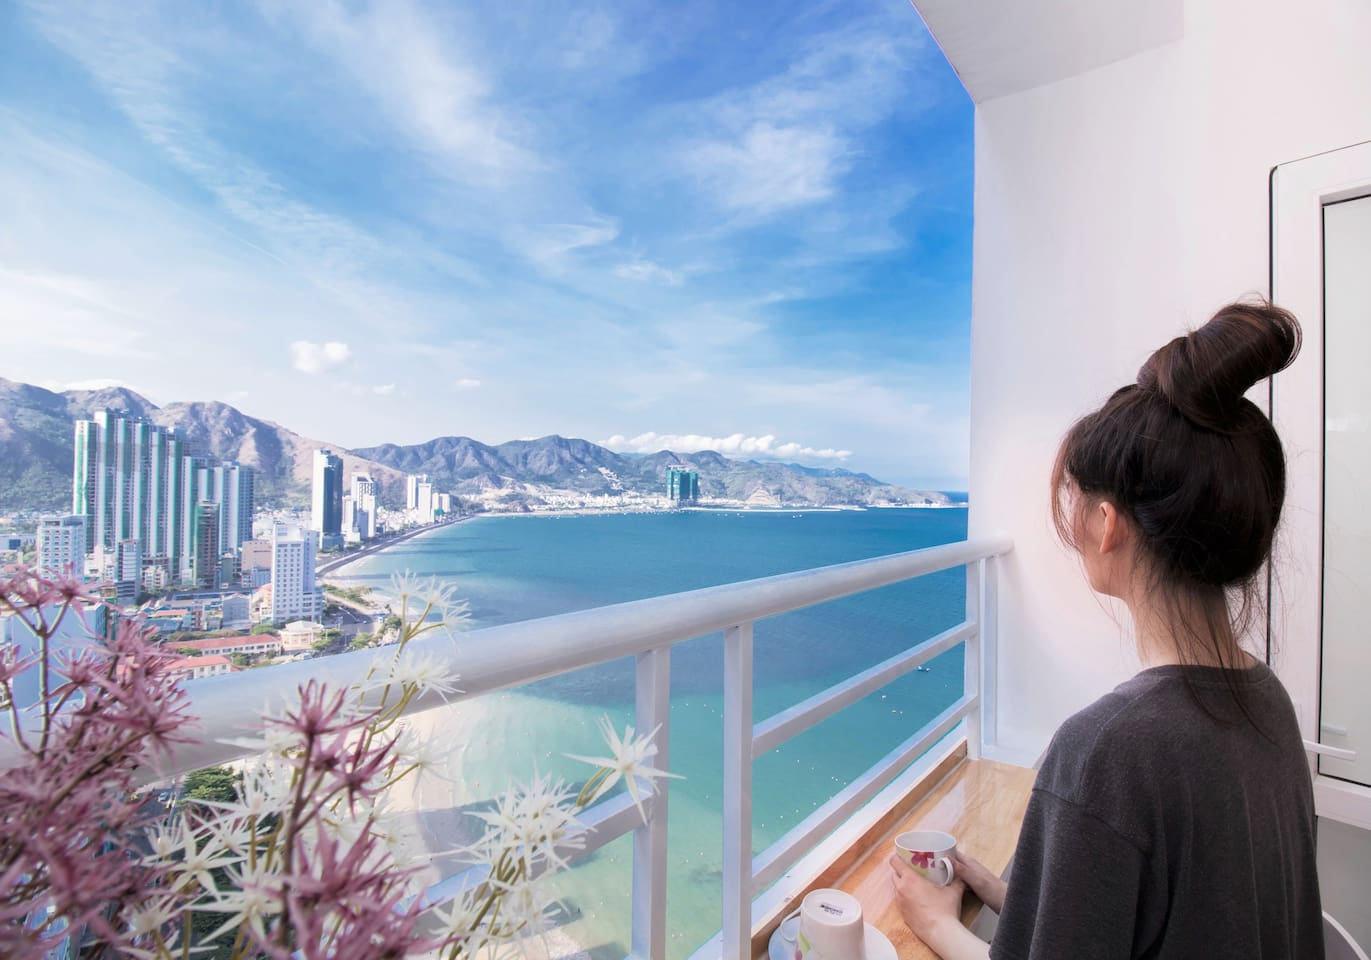 Indulge in the natural landscape of Nha Trang bay!